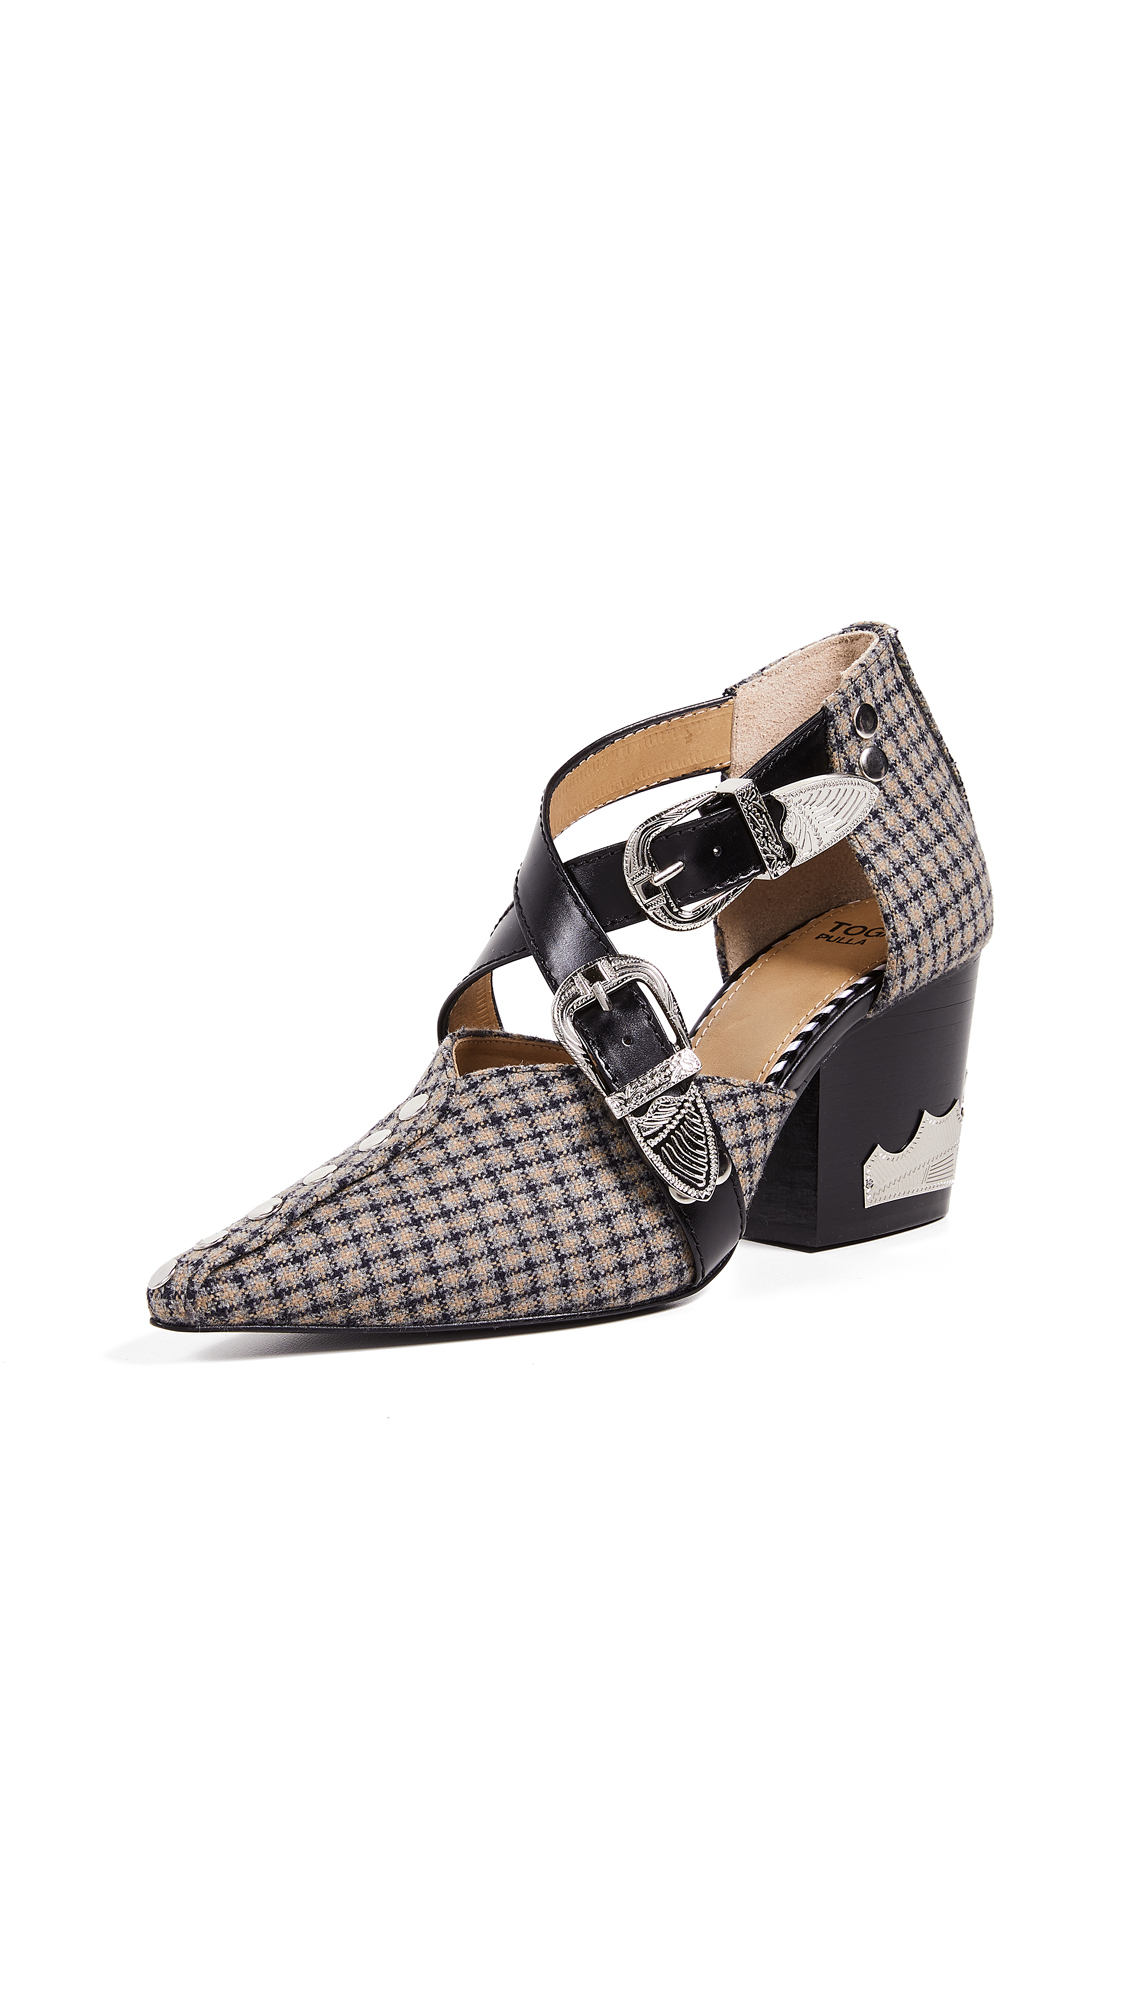 Toga Pulla Heeled Buckled Pump - Multi Check